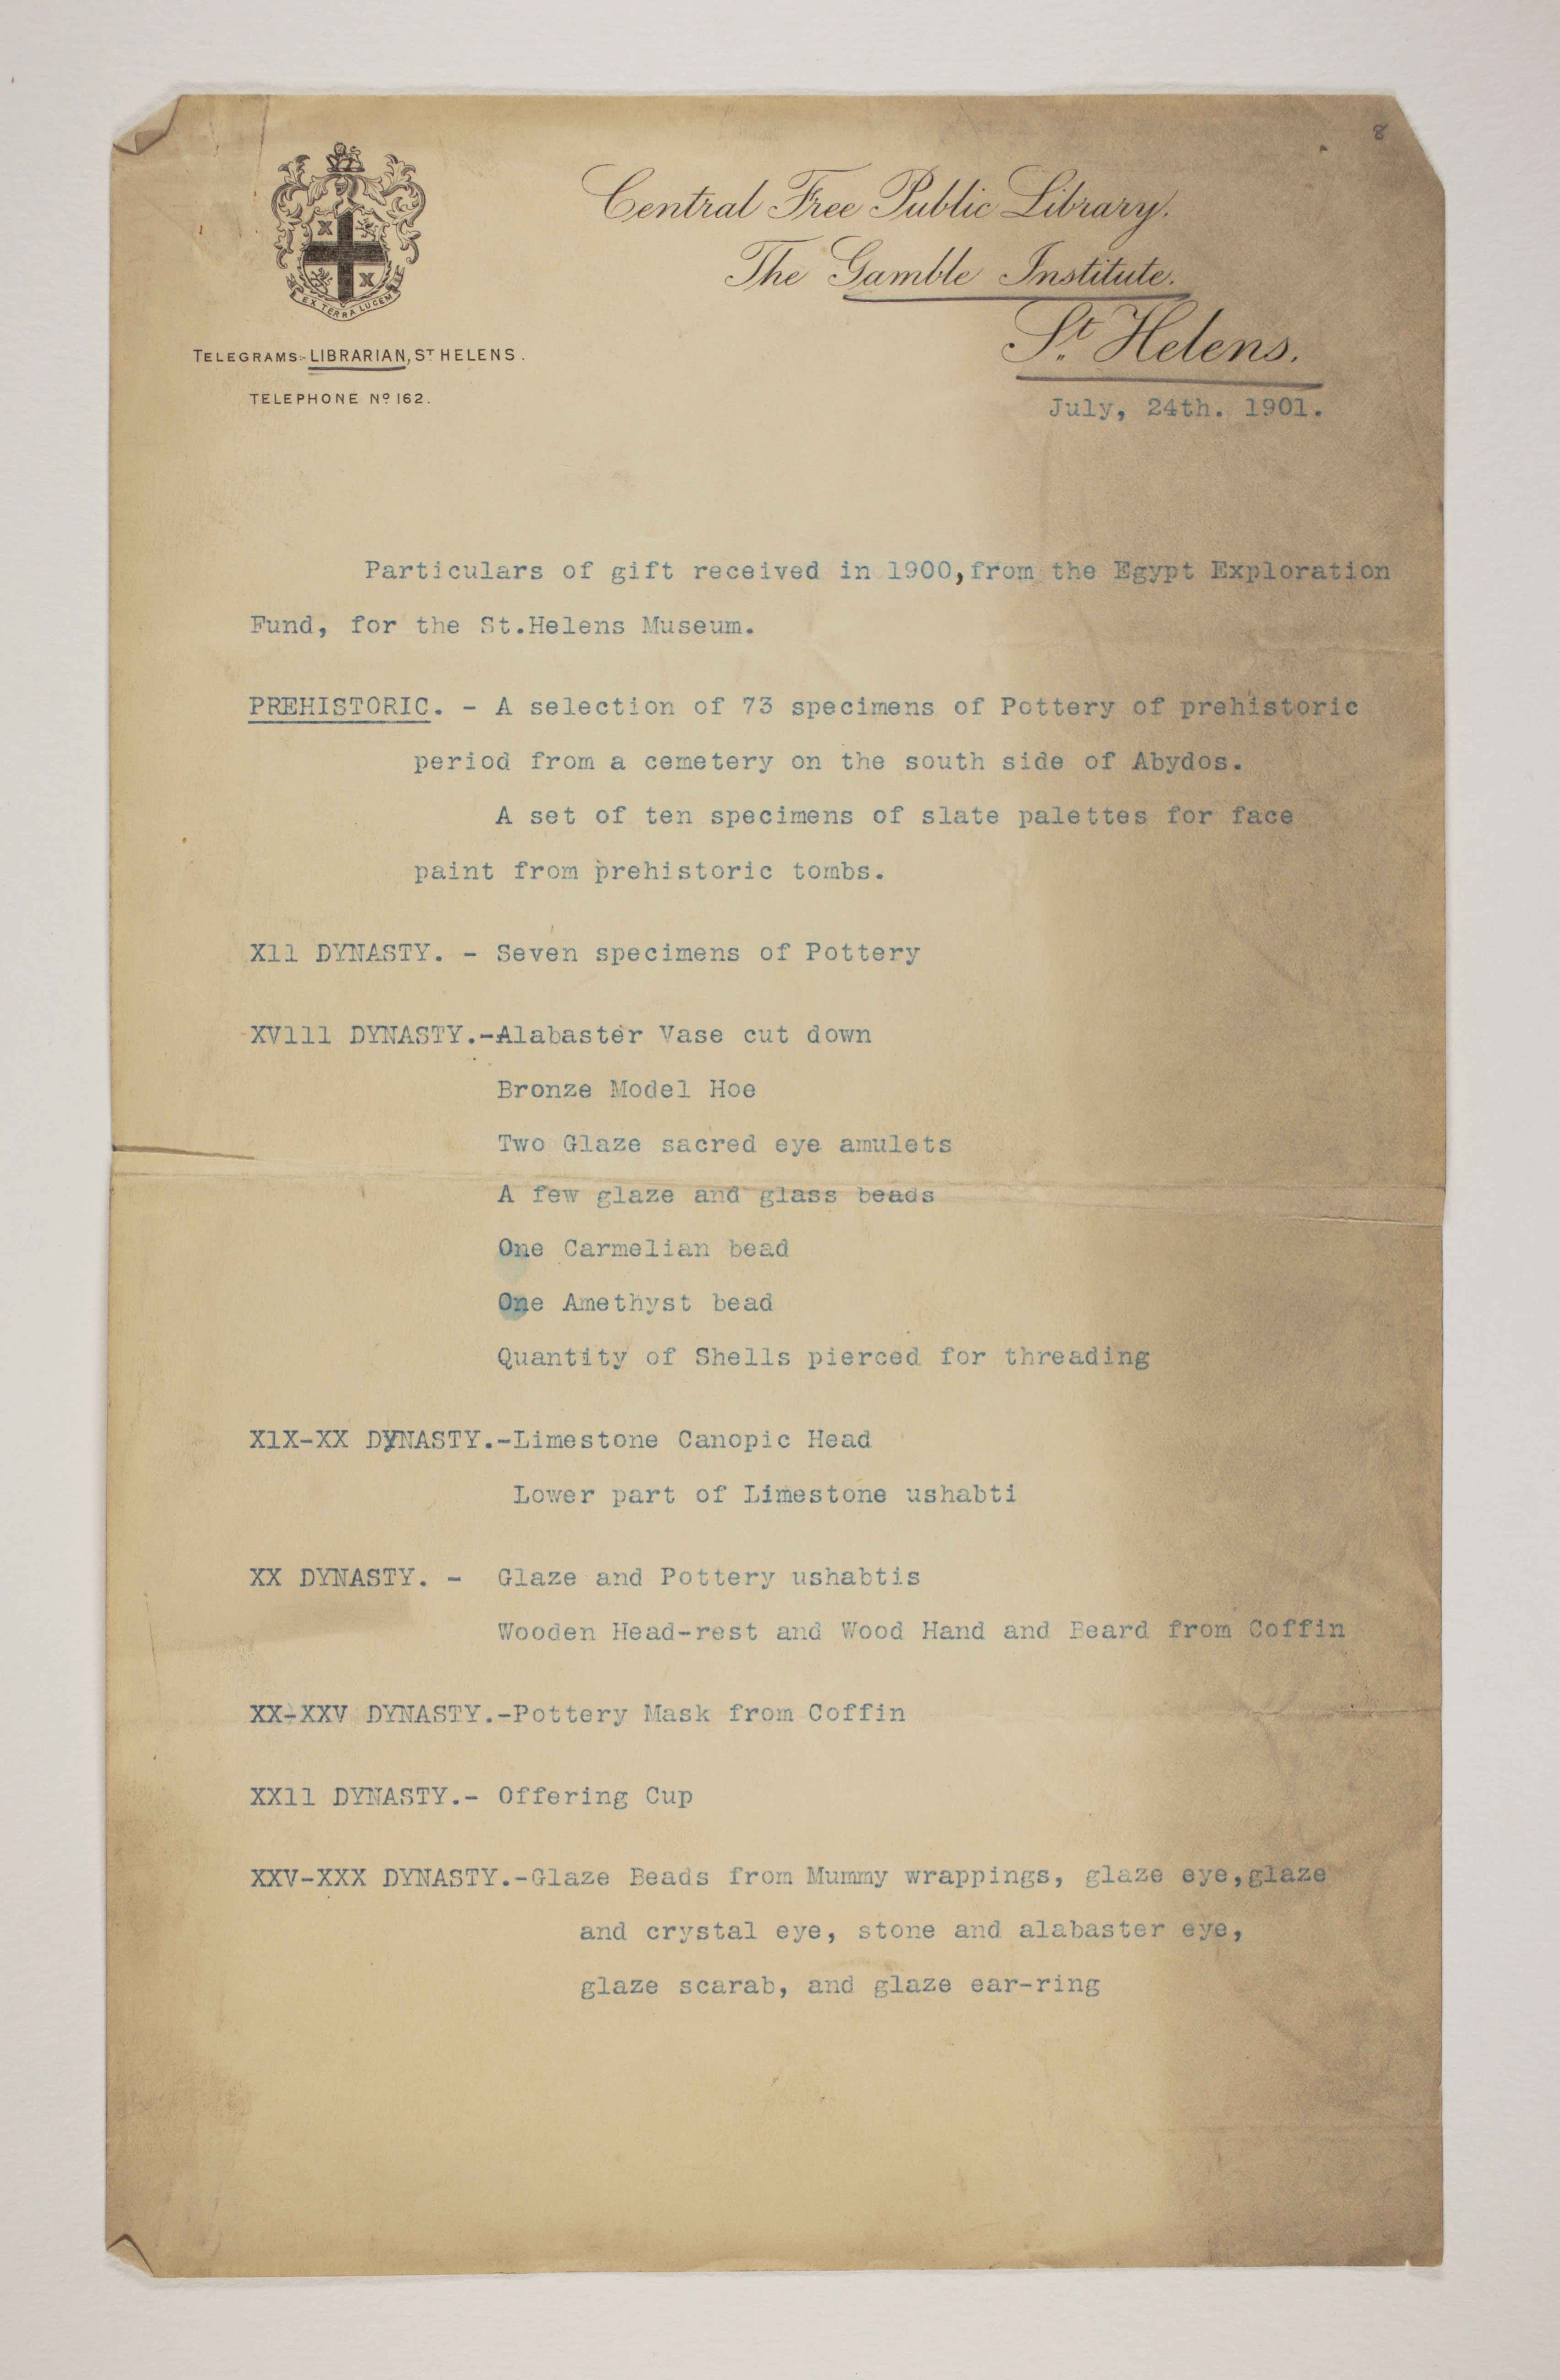 1899-1900 Abydos Receipt from institution PMA/WFP1/D/8/8.1